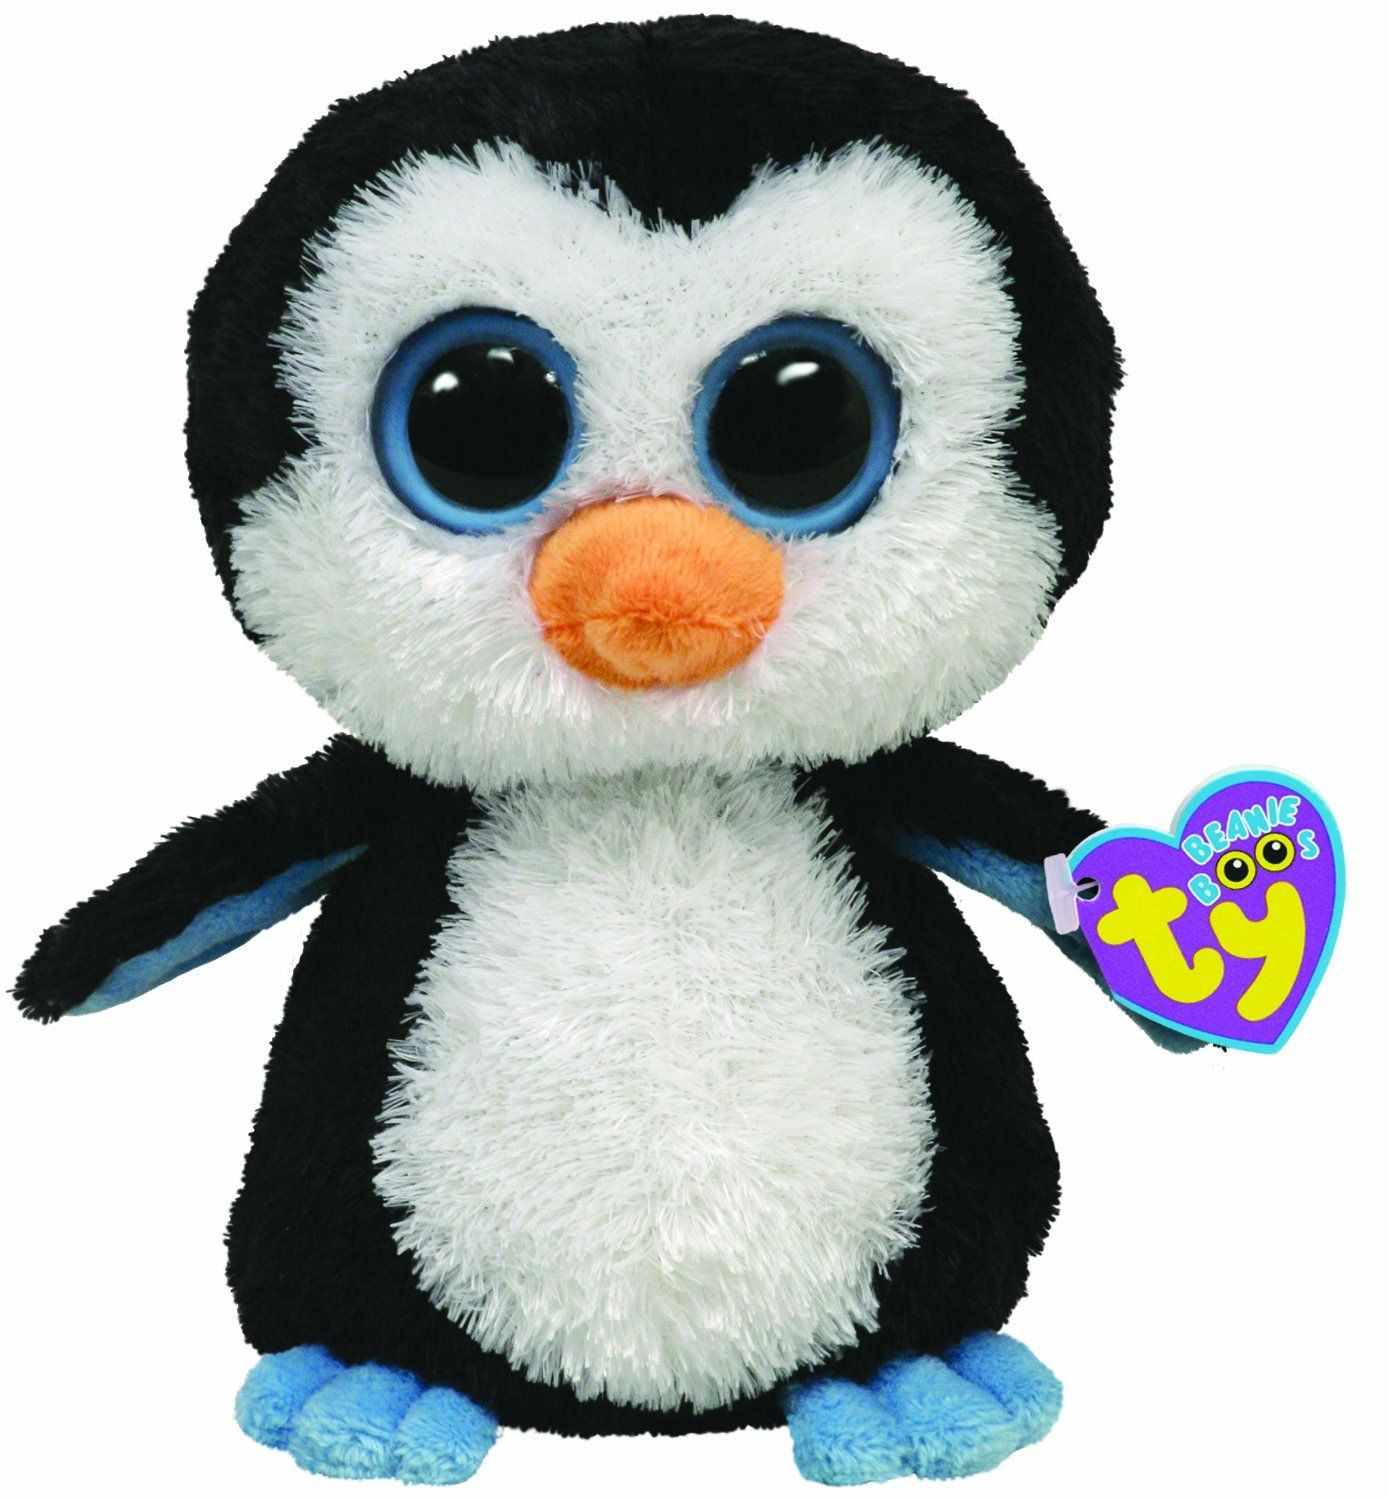 Ty Beanie Boos  Type  Penguin Name  Waddles Birthday  May Introduced   January 2012 Retired  November 2013 002b99db3c98